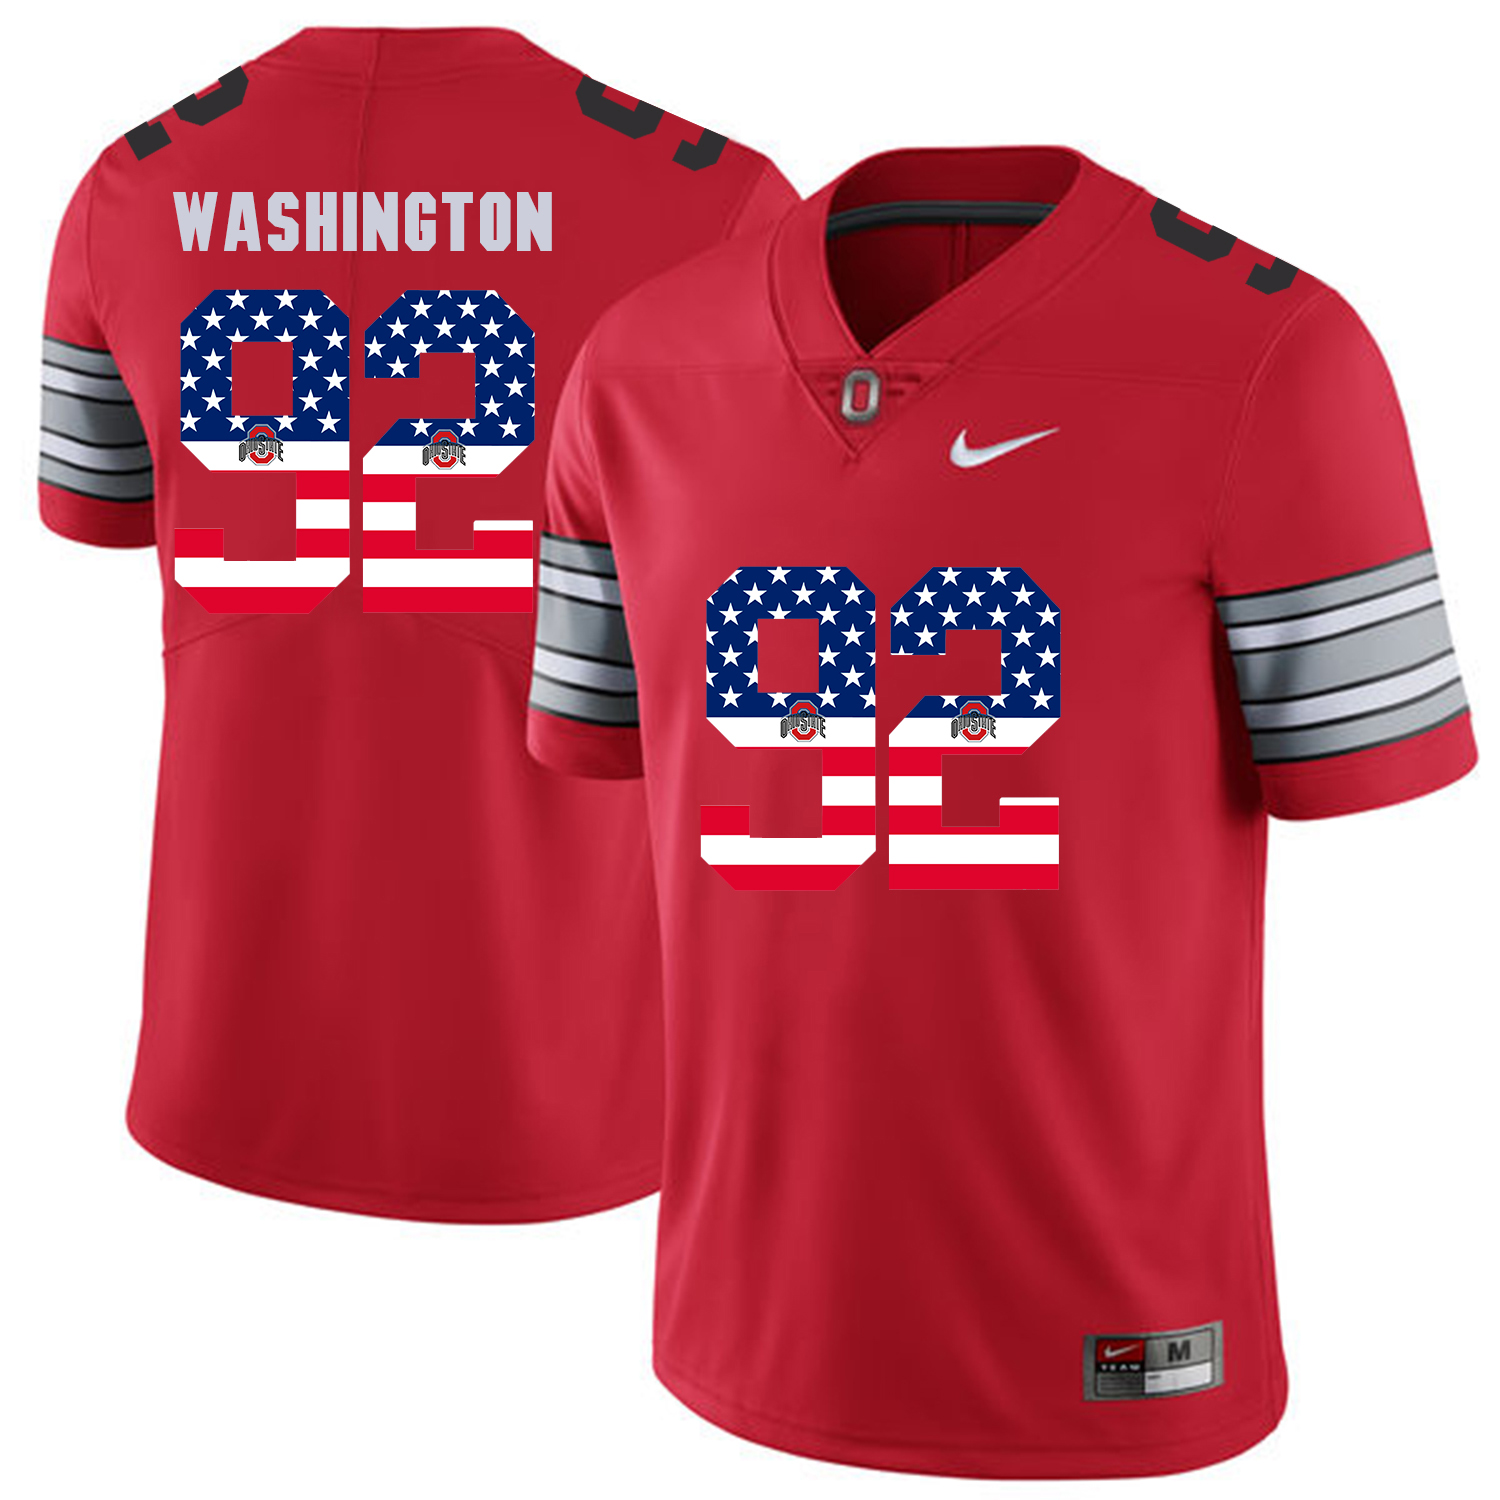 Men Ohio State 92 Washington Red Flag Customized NCAA Jerseys